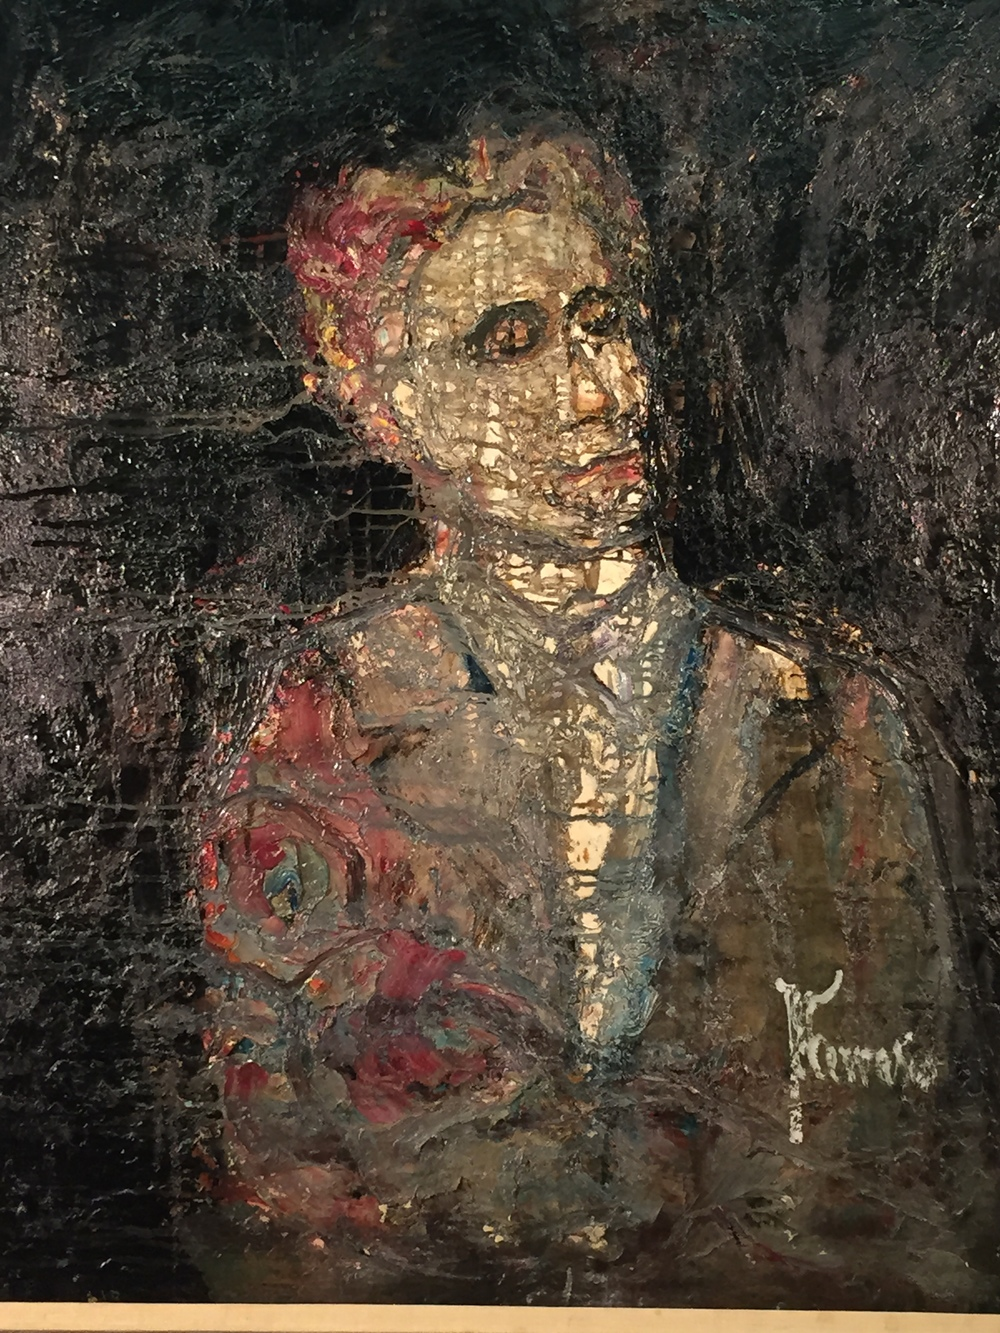 """Artist:  Active:  Title: Category: Painting Medium: Oil Ground: Masonite Signature: Signed Lower Right Size: 39.5 x 31.5 Style:  Subject:  Frame:  Frame Size Overall: 47 x 39.5 Seller's Notes/Description: On Reverse: """"El Ventivan, Buenos Aires Argentina, Alexandro Rey, Hollywood, CA"""" Price: Please Contact Dealer"""